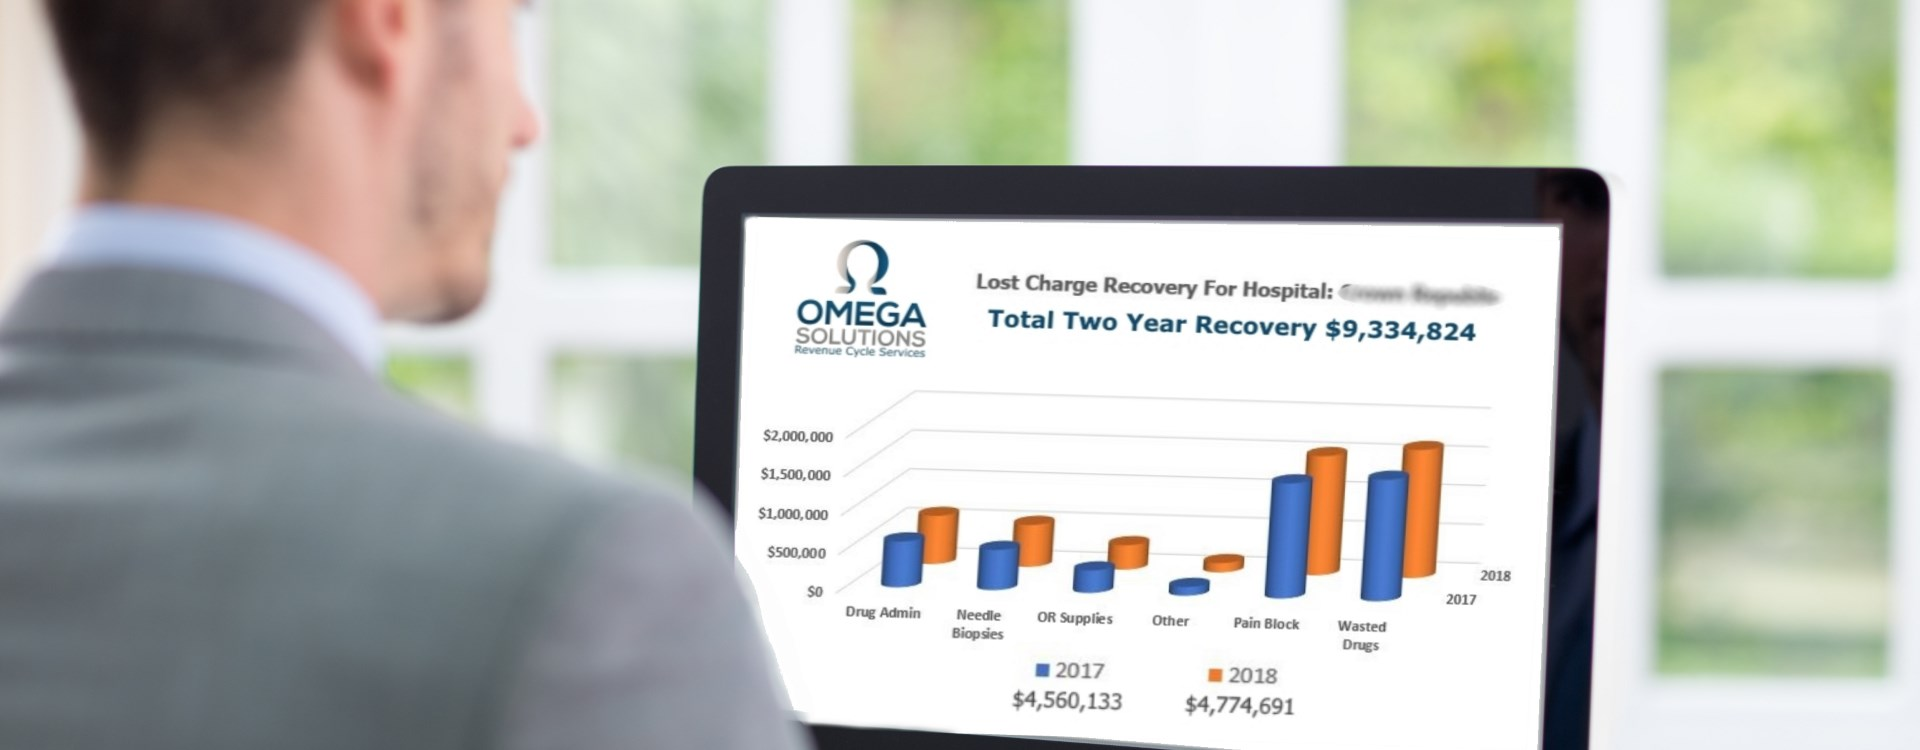 Omega Lost Charge Recovery for Hospitals